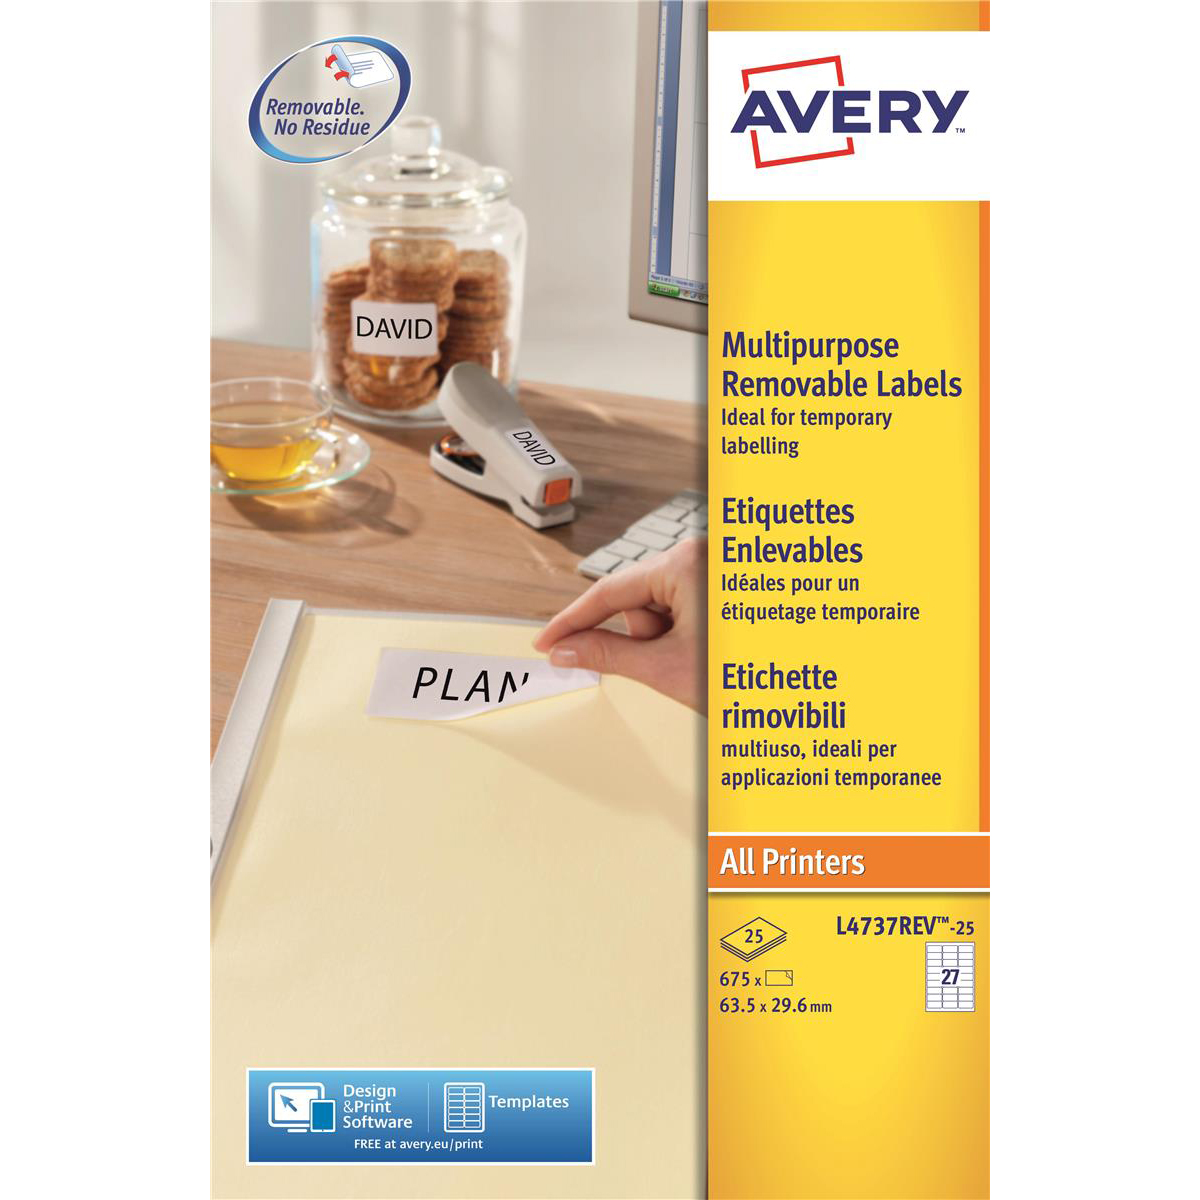 Avery Mini Multipurpose Labels Removable Laser 27 per Sheet 63.5x29.6mm White RefL4737REV-25 [675 Labels]